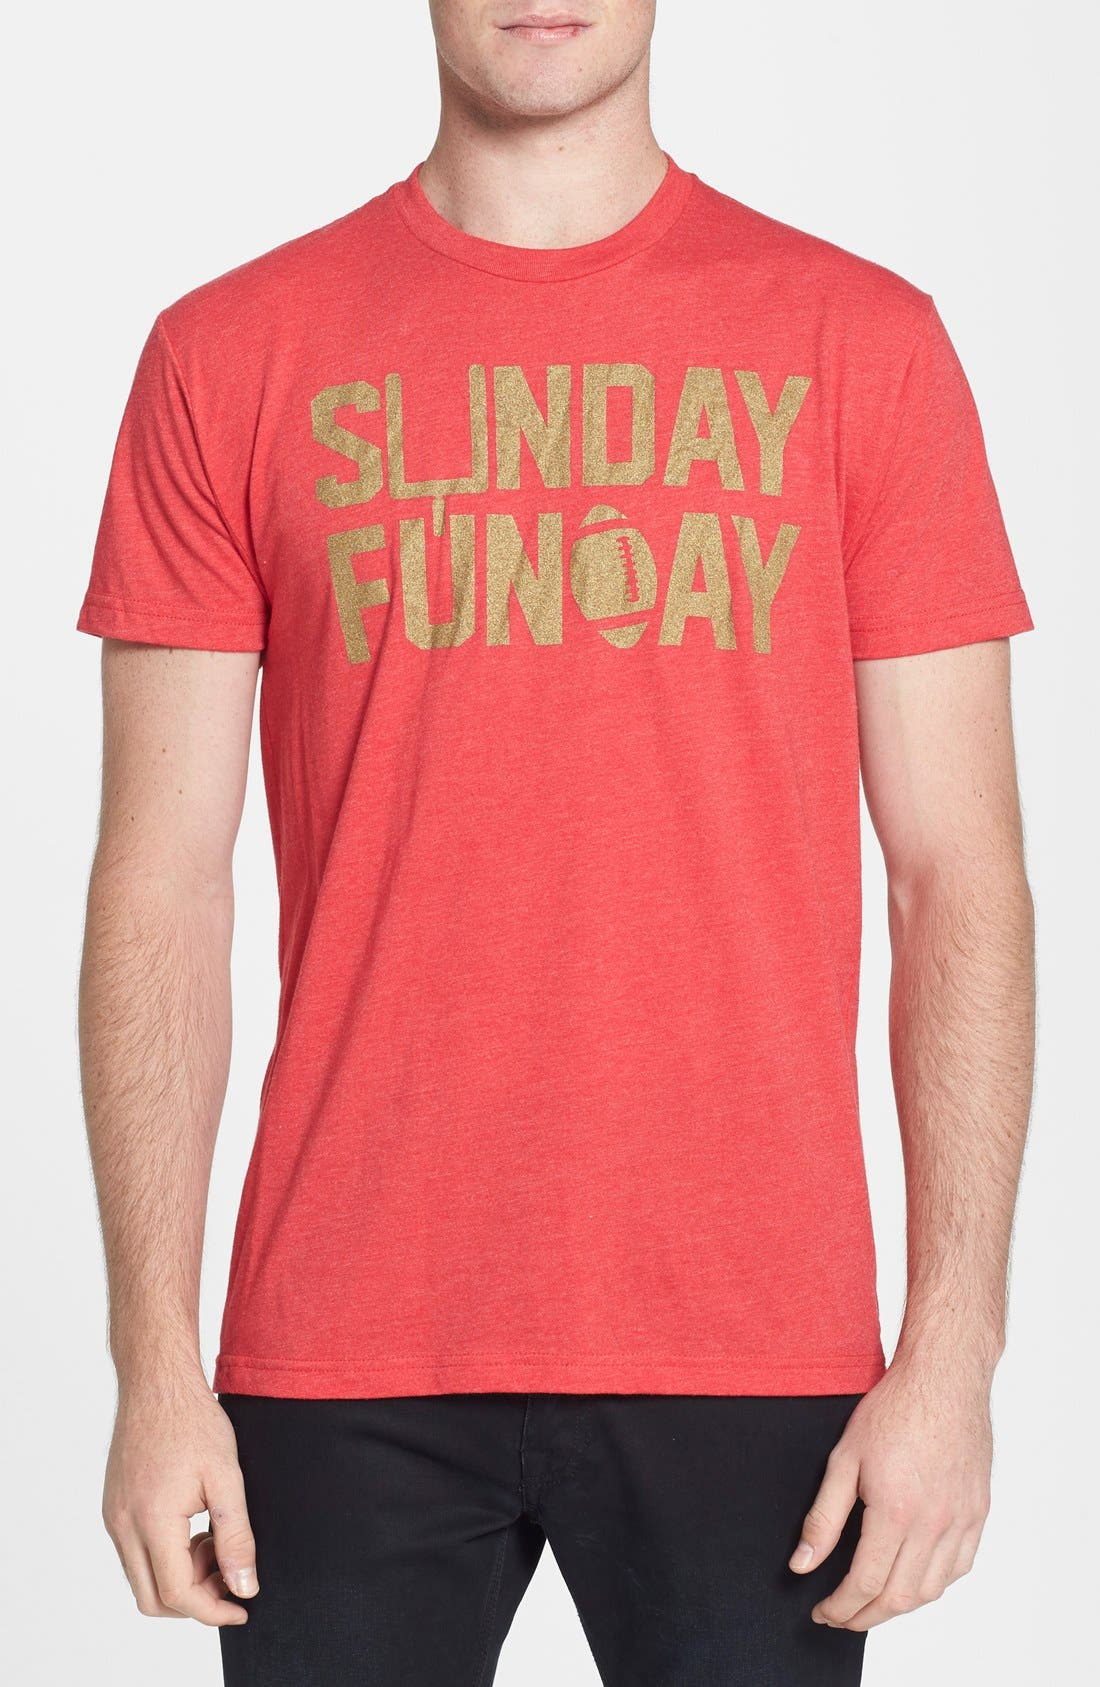 Main Image - Kid Dangerous 'Sunday Funday' Graphic T-Shirt